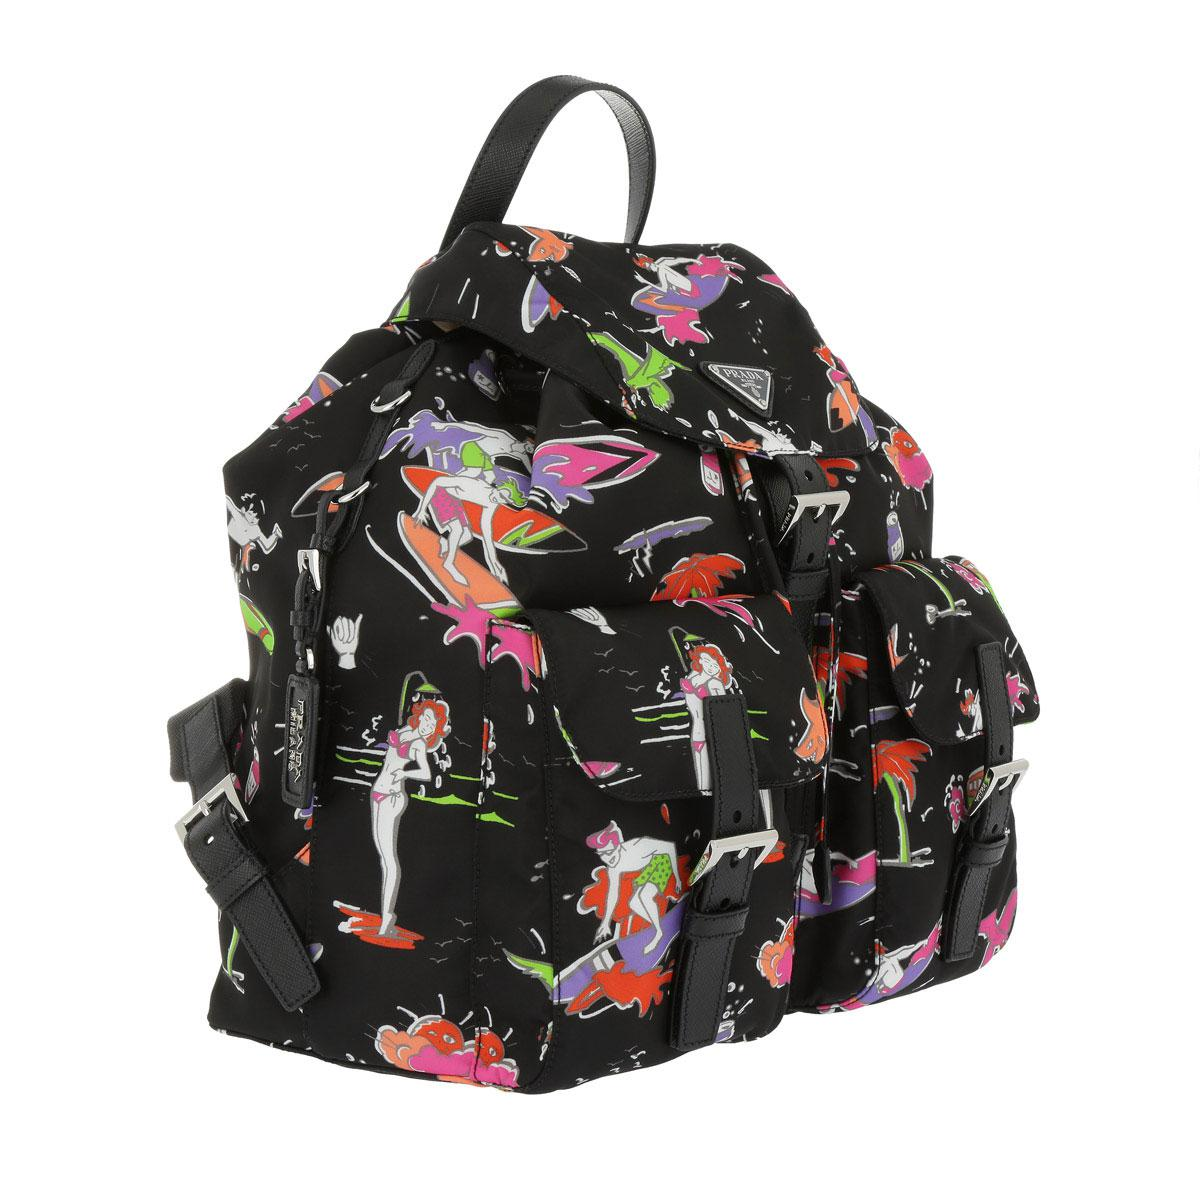 Prada Synthetic Surfer Print Nylon Backpack in Black/Print (Black)